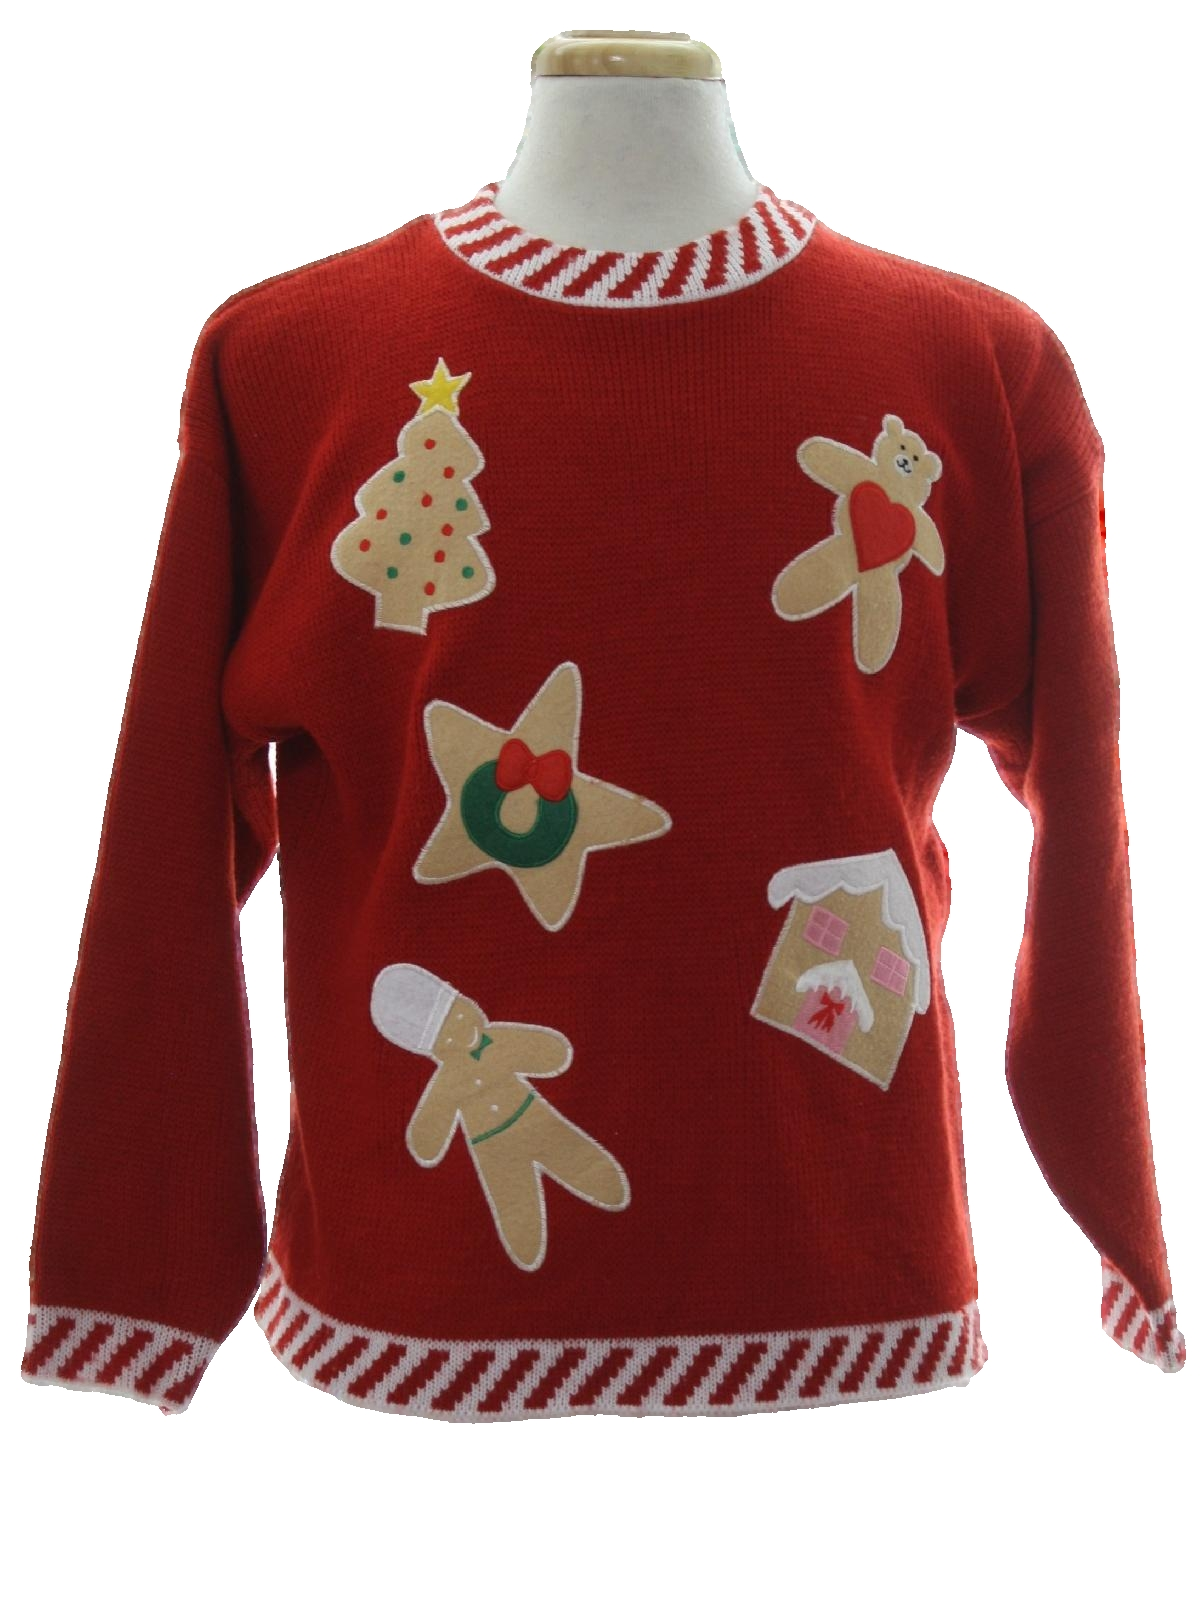 ugly christmas sweater retro look knit works unisex red tan pink green background cotton ramie blend pullover longsleeve ugly christmas sweater with